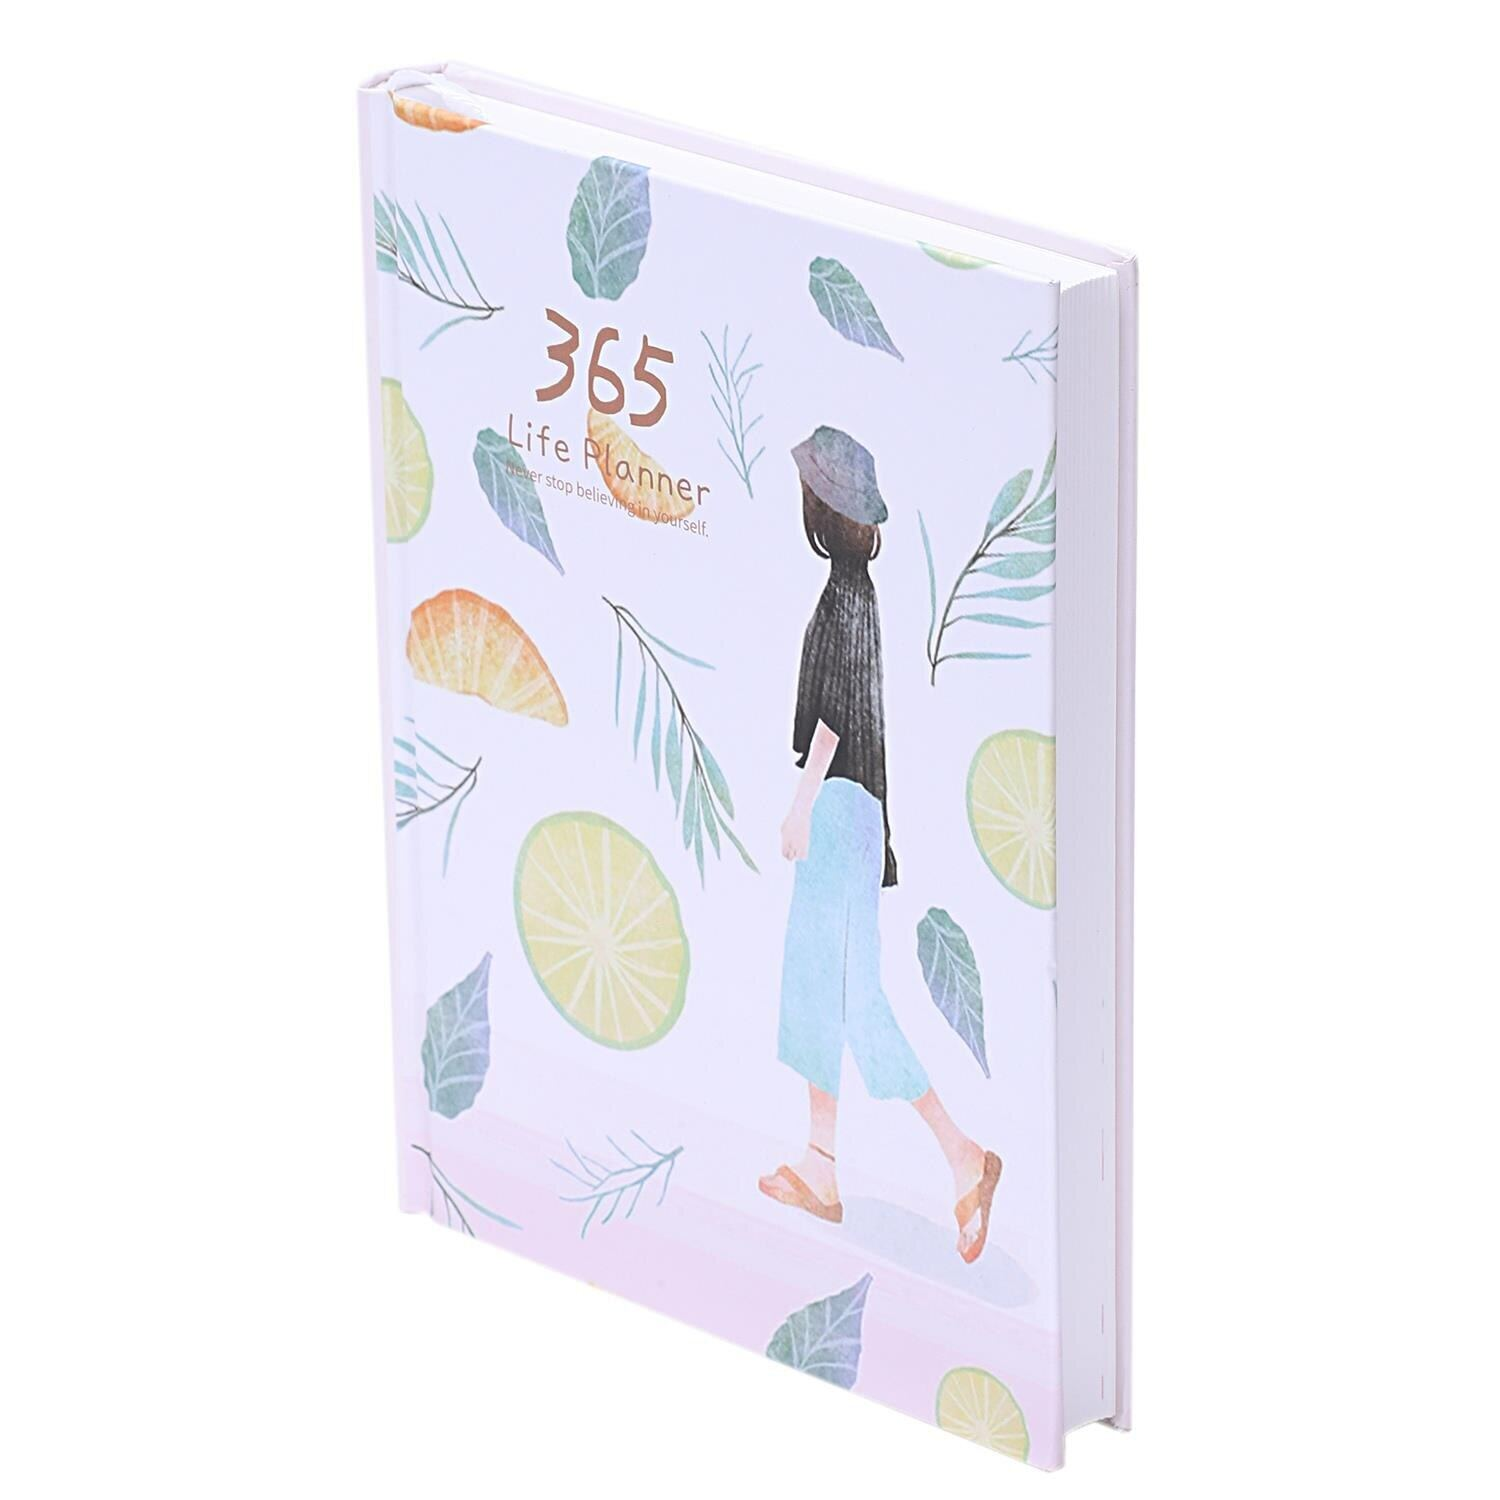 HOT-Creative Hardcover Year Plan Notebook 365 Days Inner Page Monthly Daily Planner Organizer Diary Leaves&Lemon